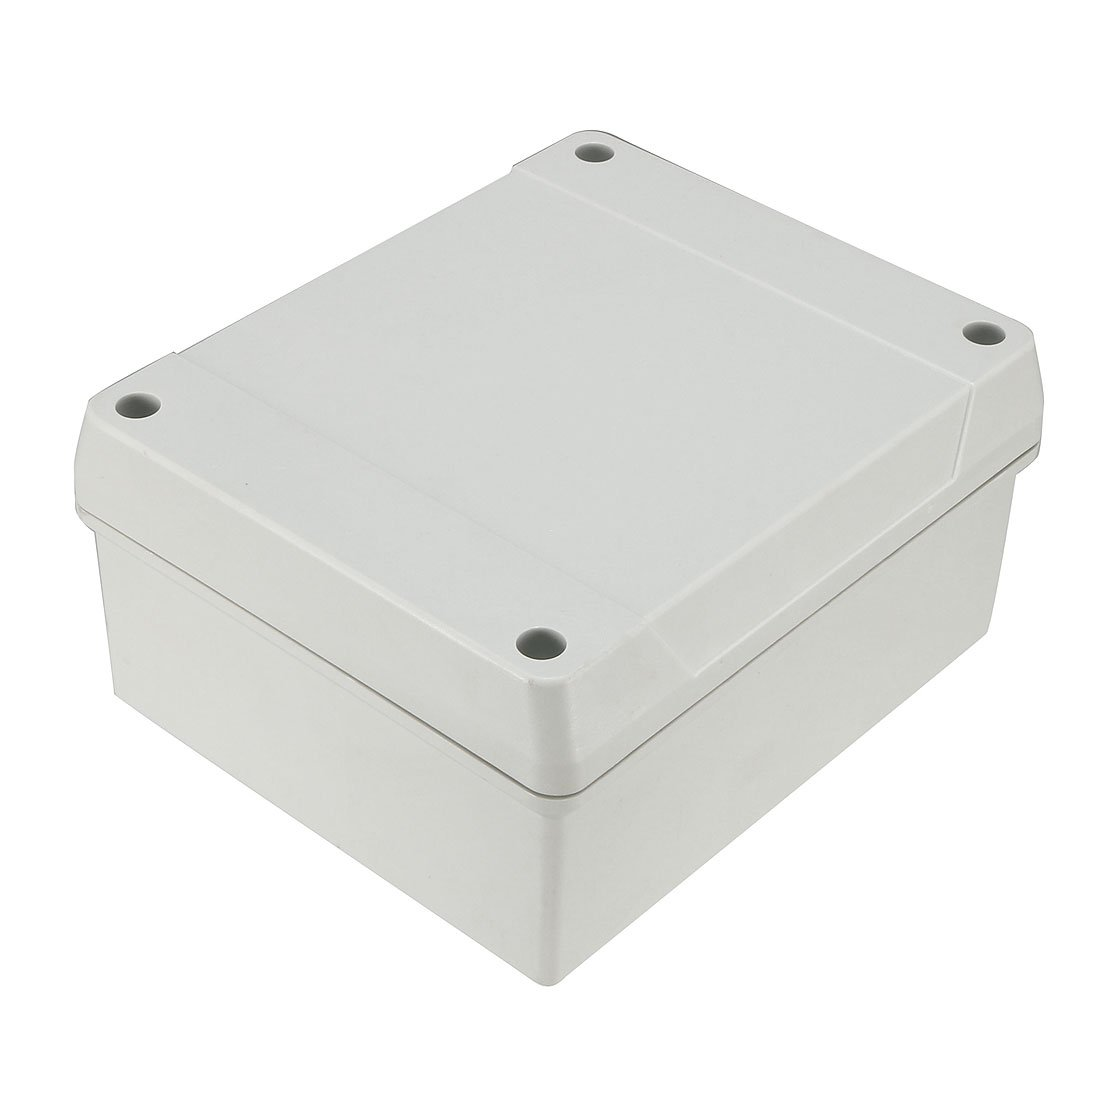 uxcell 5.5''x4.7''x2.8''(139mmx119mmx70mm) ABS Flame Retardant Dustproof IP65 Junction Box Universal Project Enclosure w 5Terminal